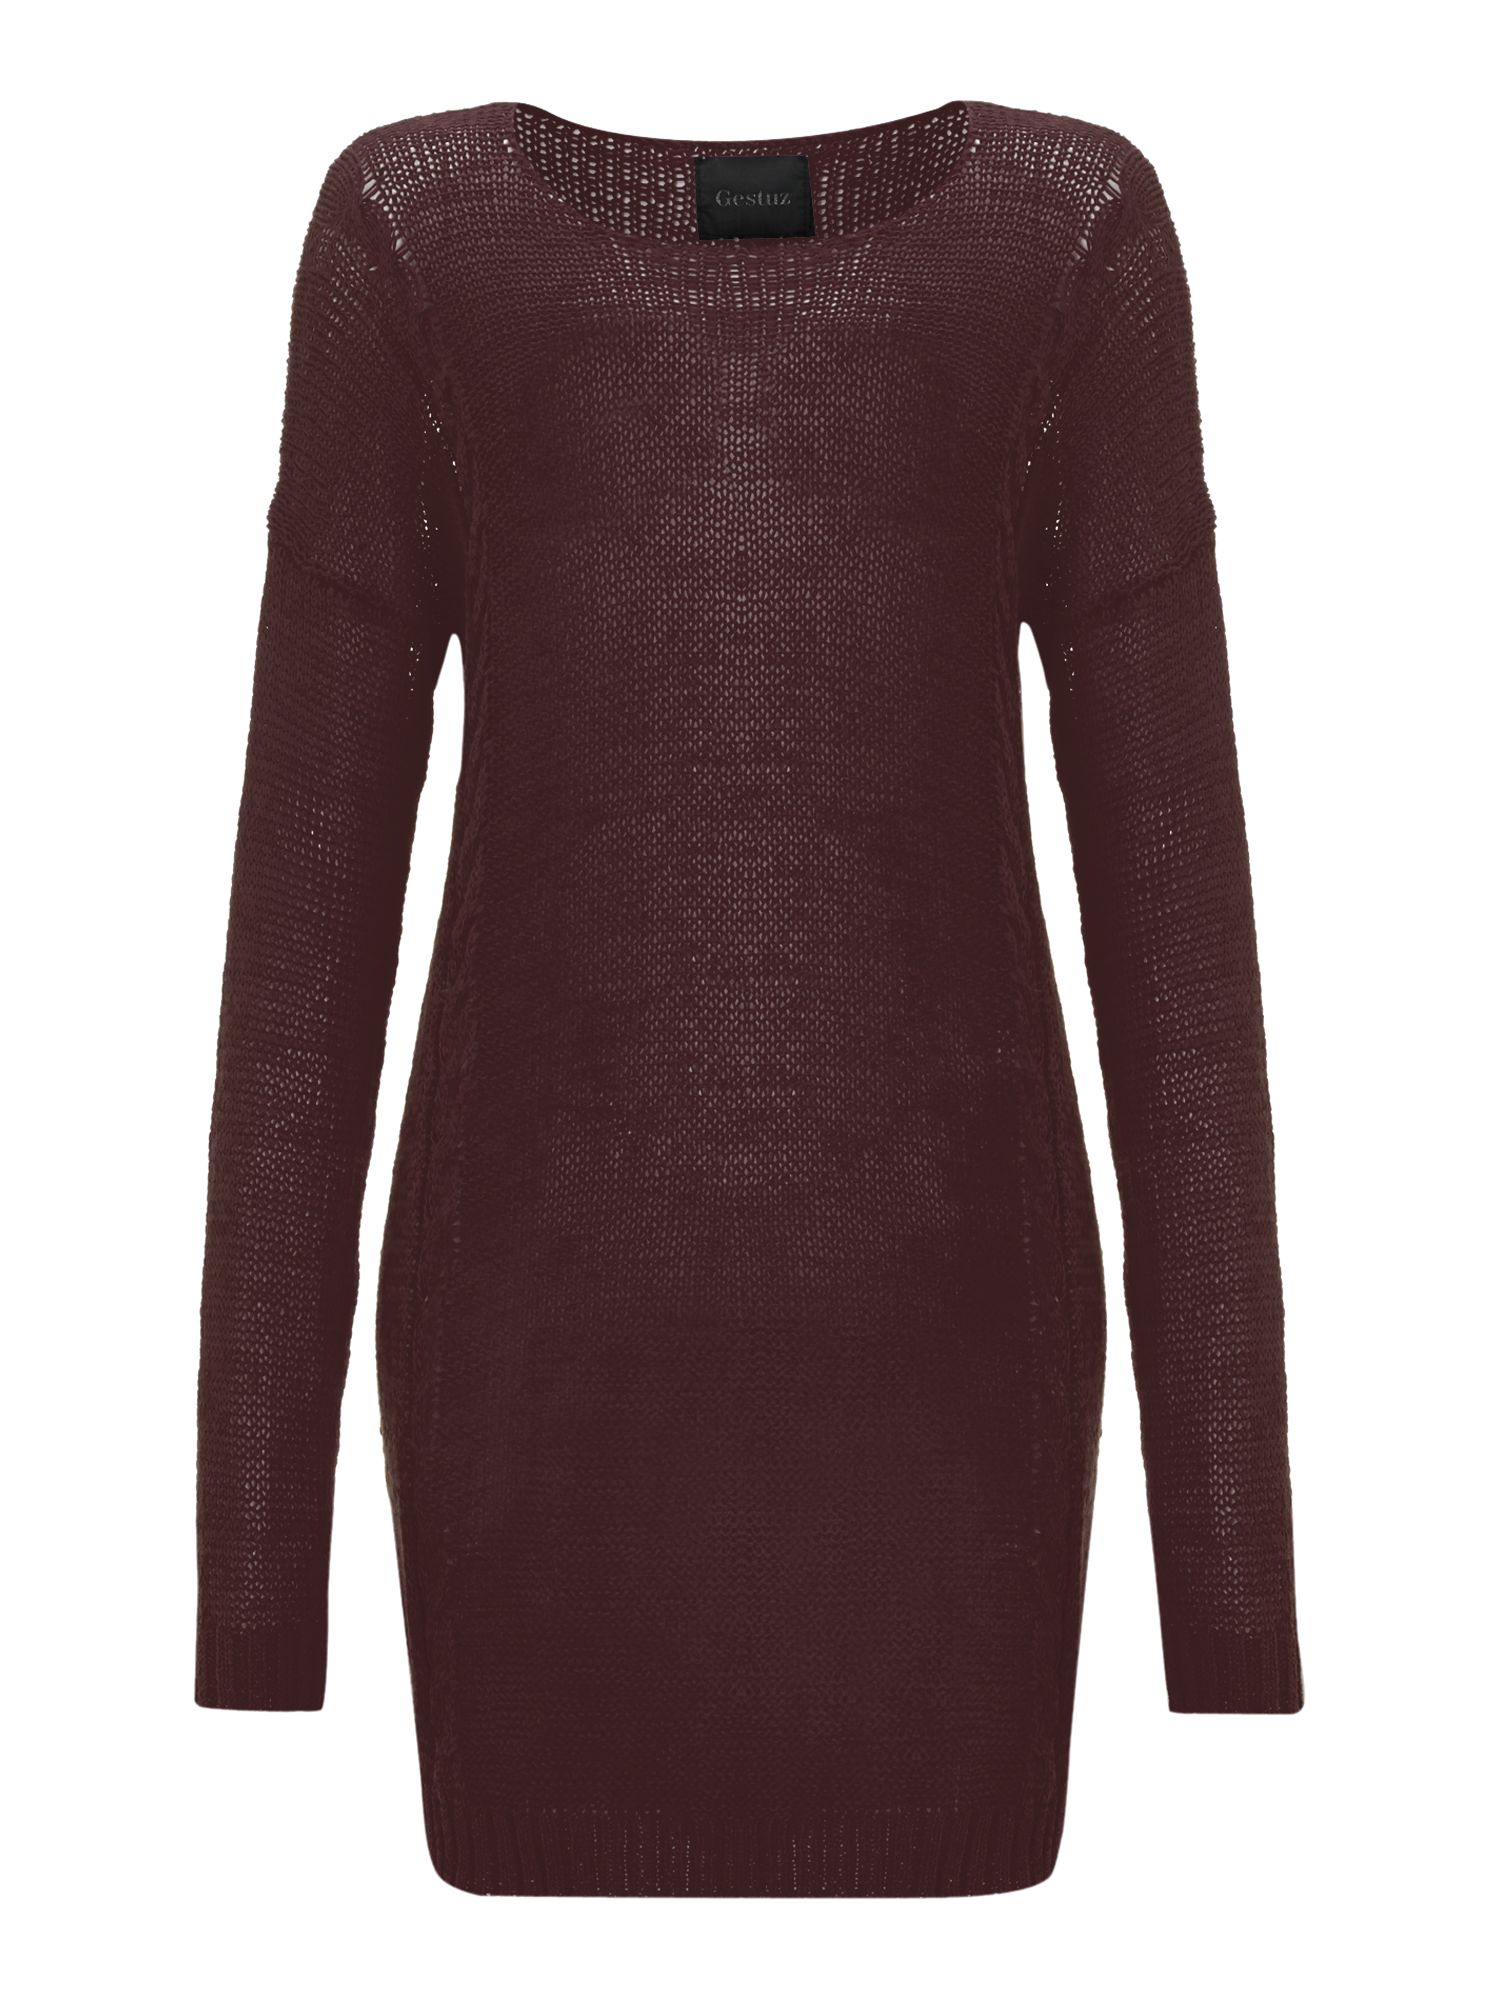 Long sleeve crew neck jumper dress